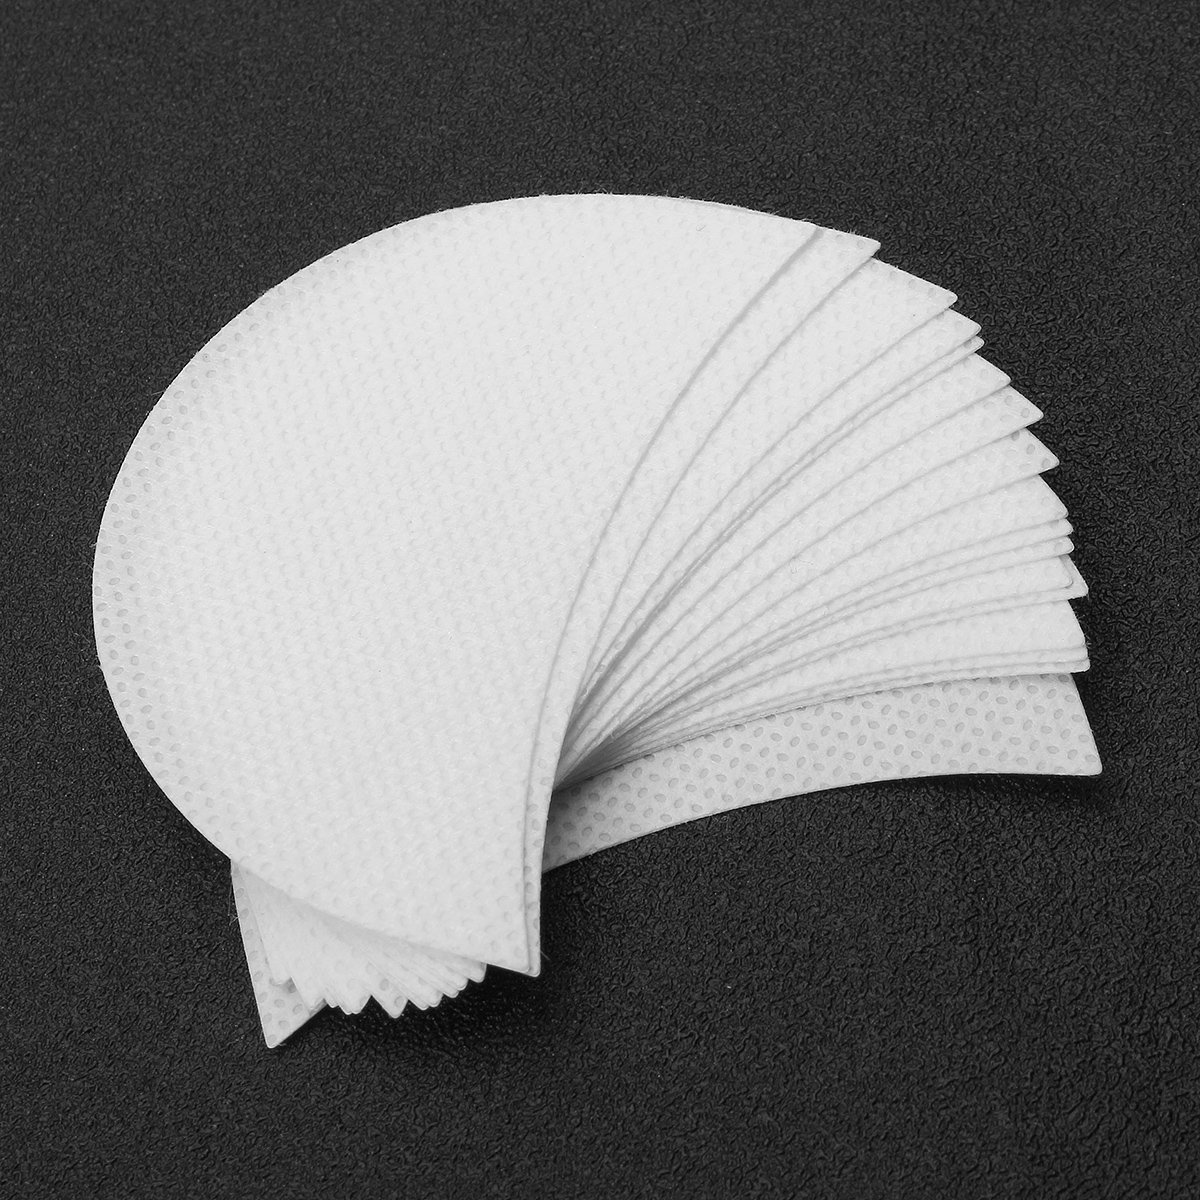 100Pcs Disposable Eyeshadow Shield Lashes Patches Under Eyes Pads Lip Tape Eyelash Extension